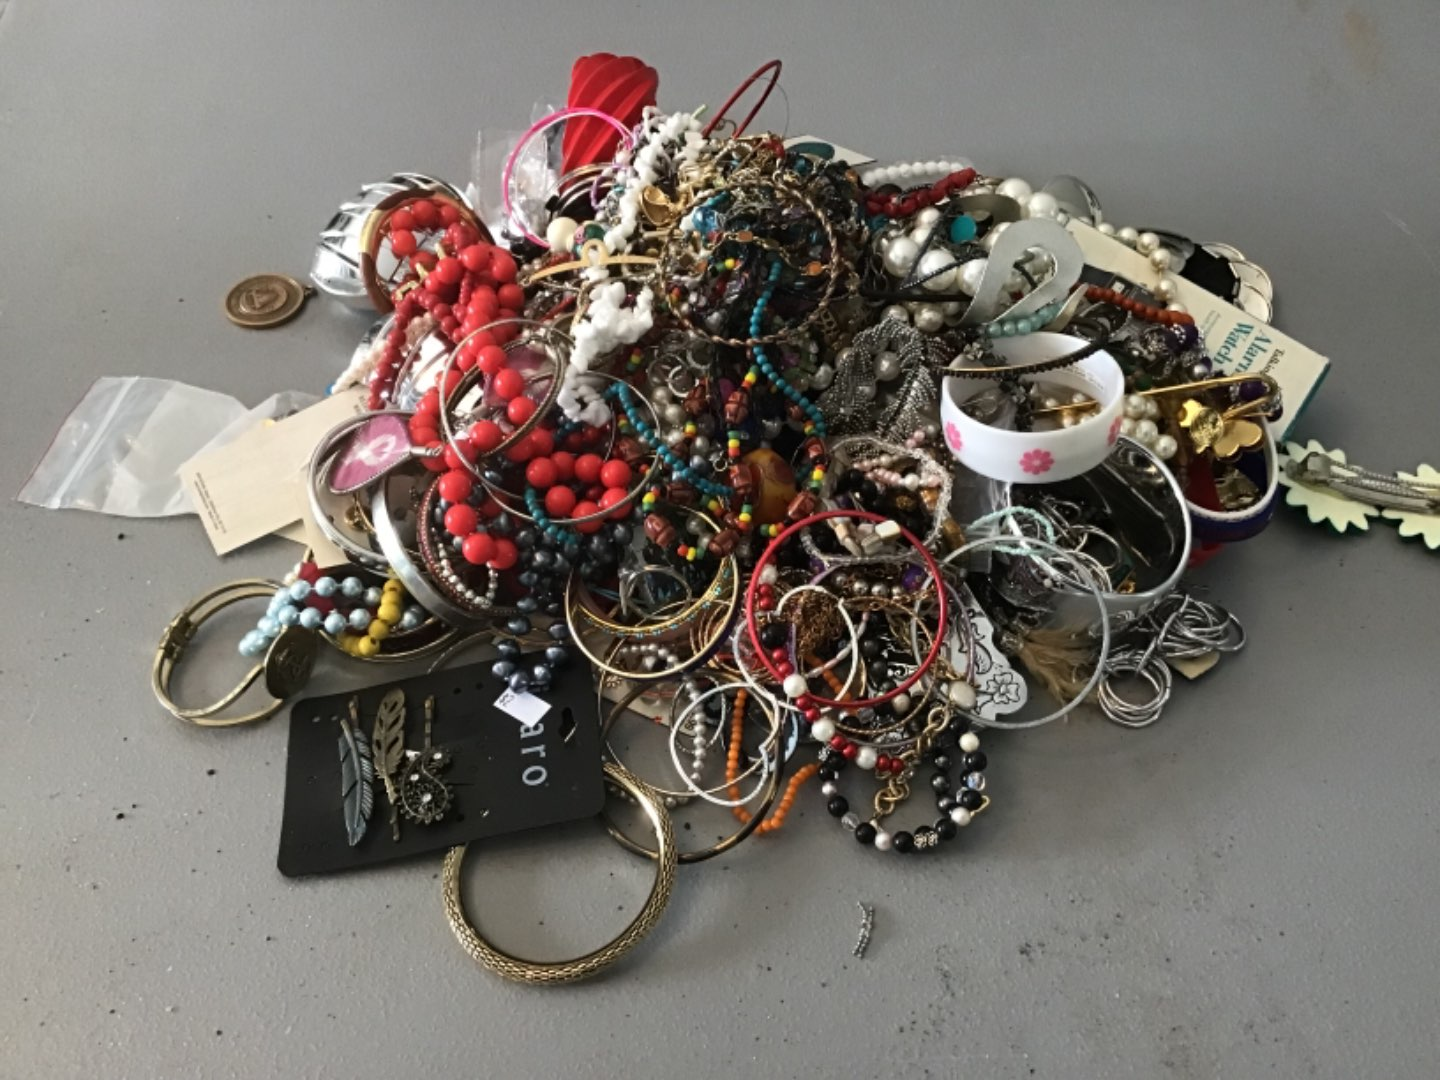 Lot # 233 HUUUGE LOT OF COSTUME JEWELRY - Approx 10 Lbs - As found